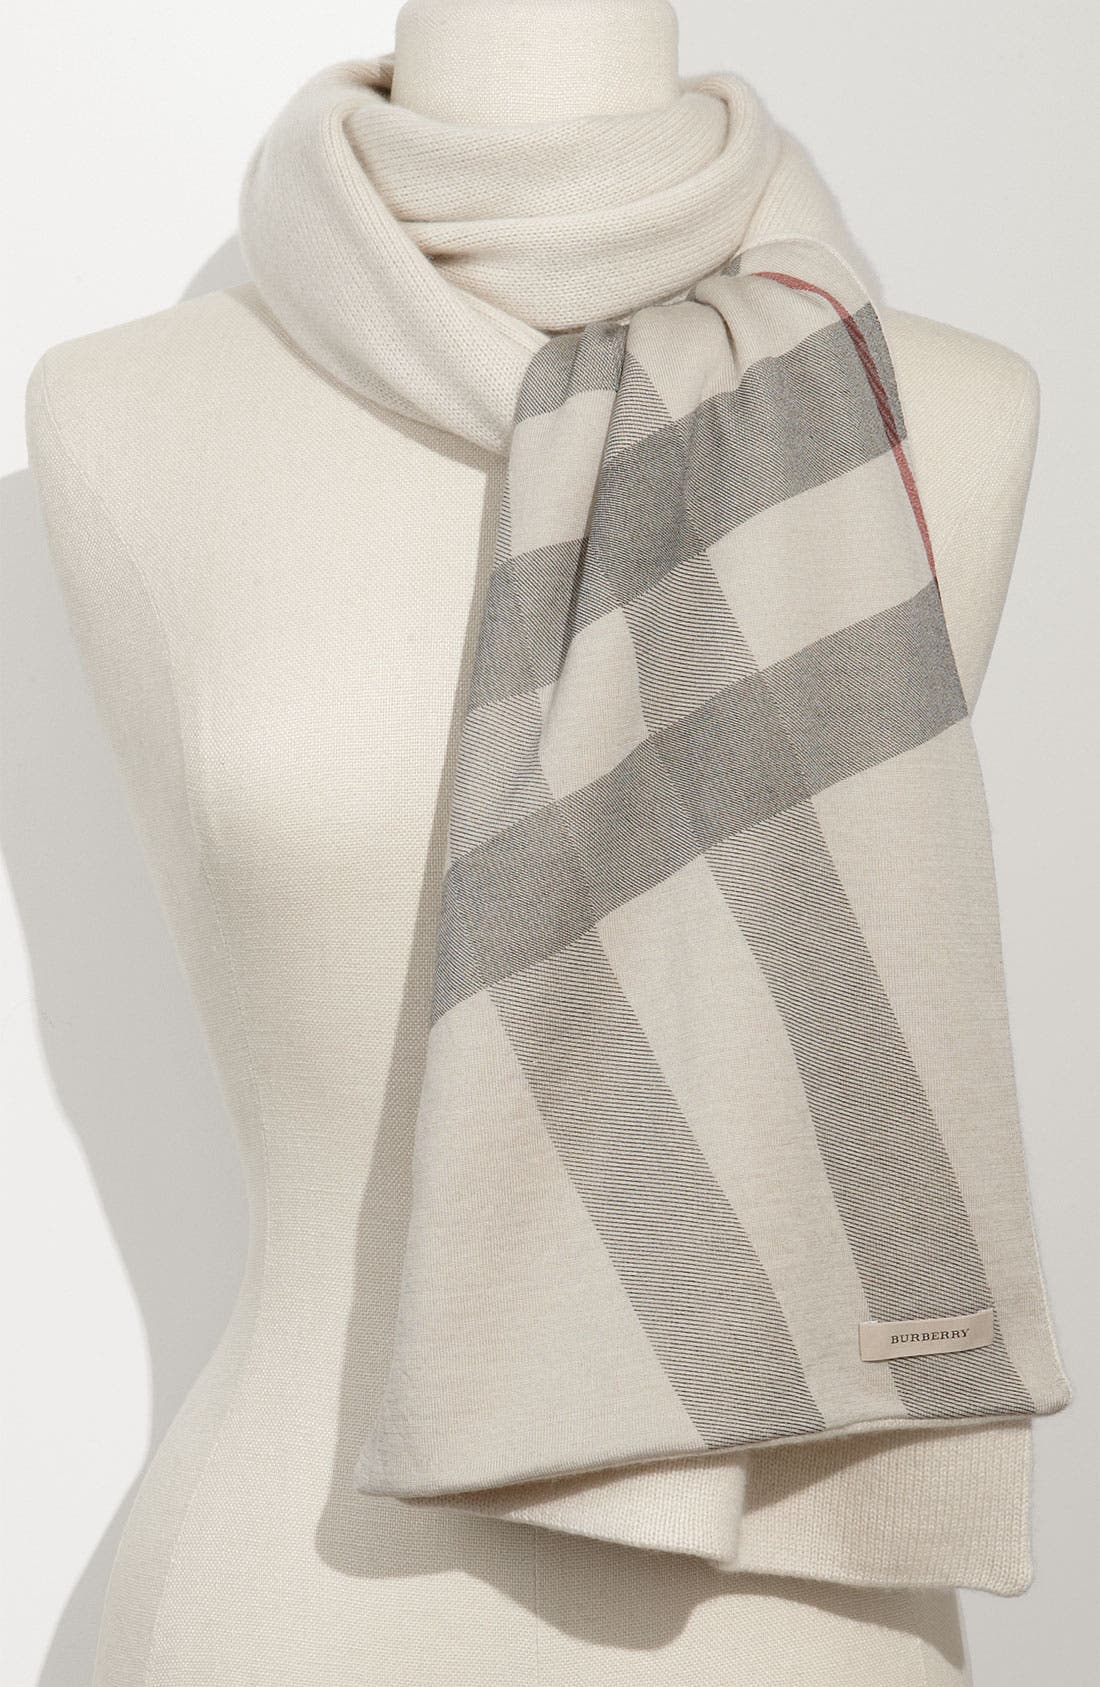 Alternate Image 1 Selected - Burberry Solid & Check Cashmere Scarf